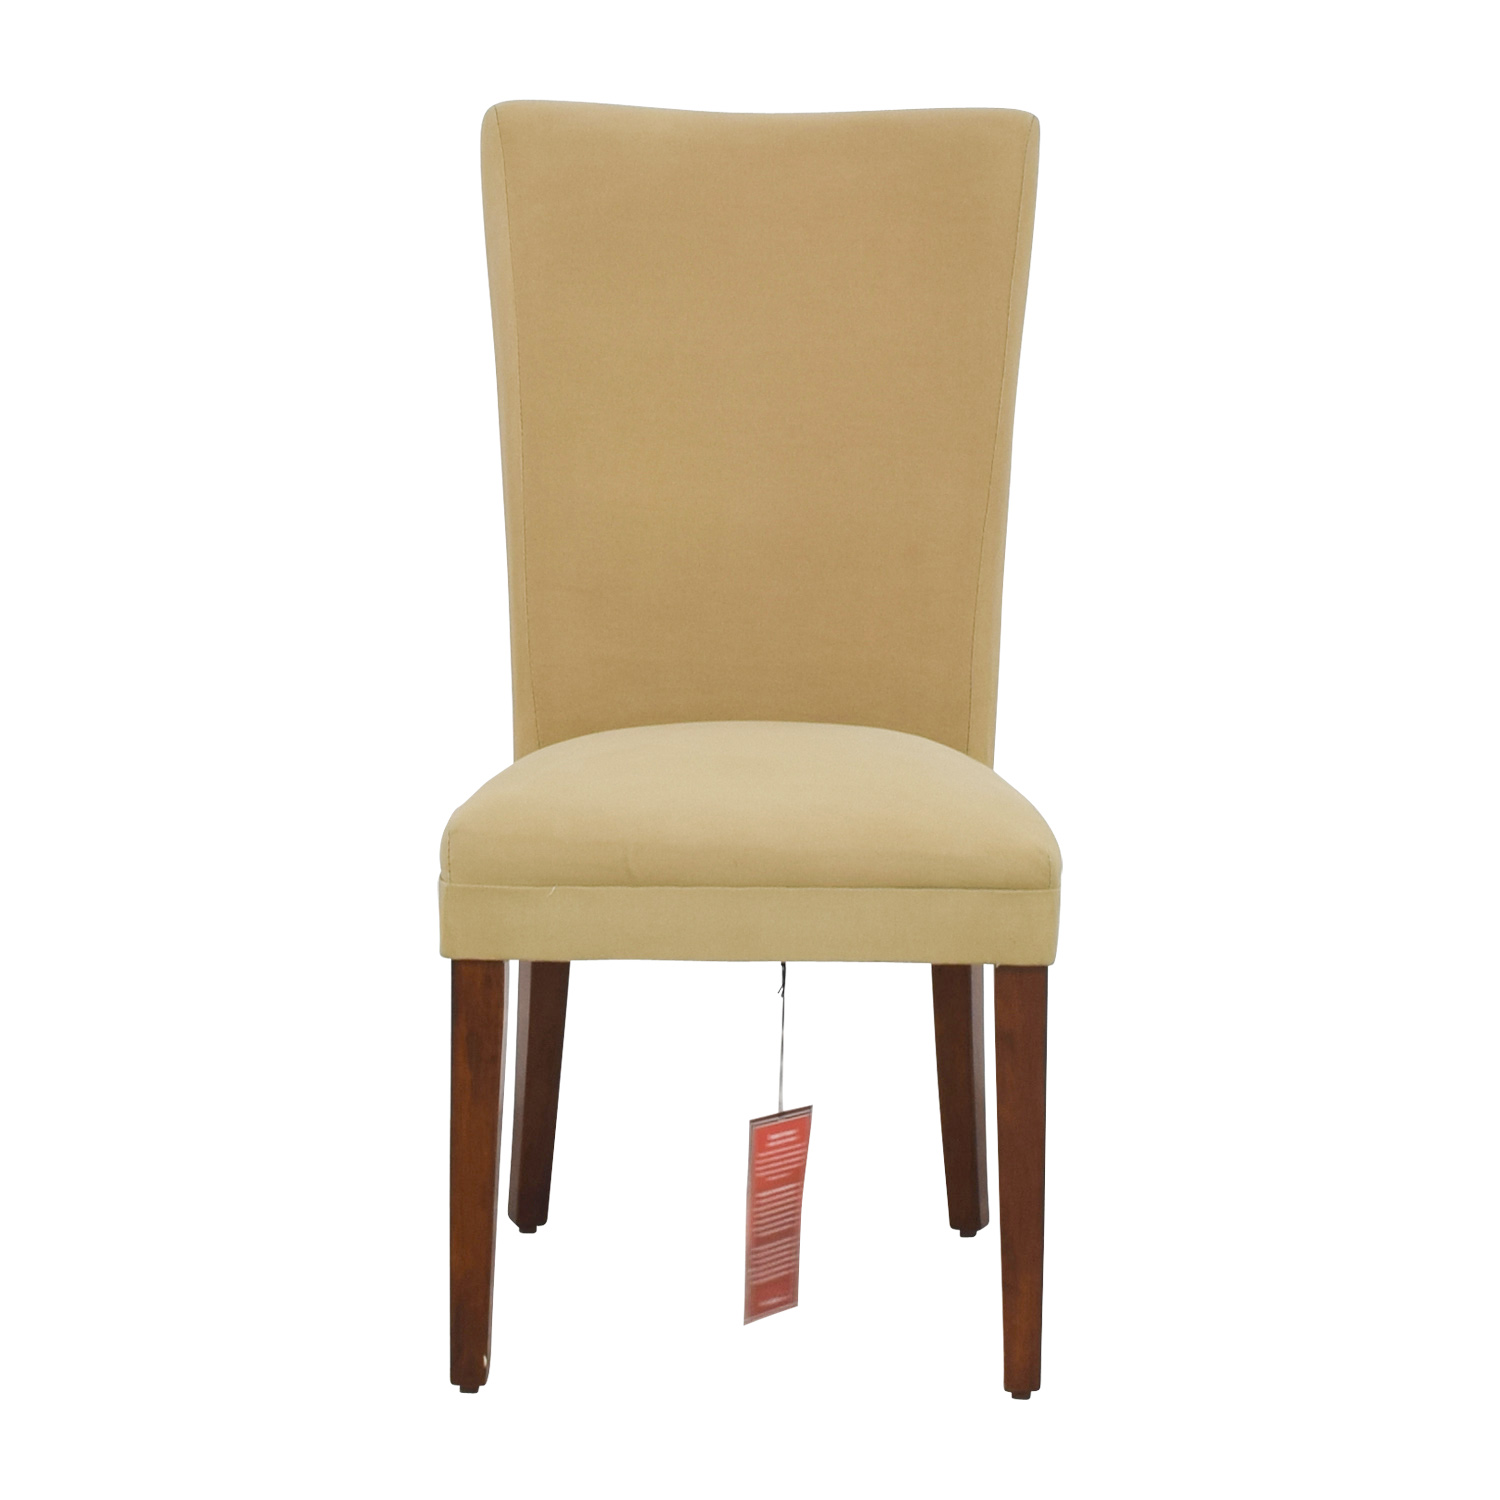 Coaster Coaster High Back Tan Upholstered Chair